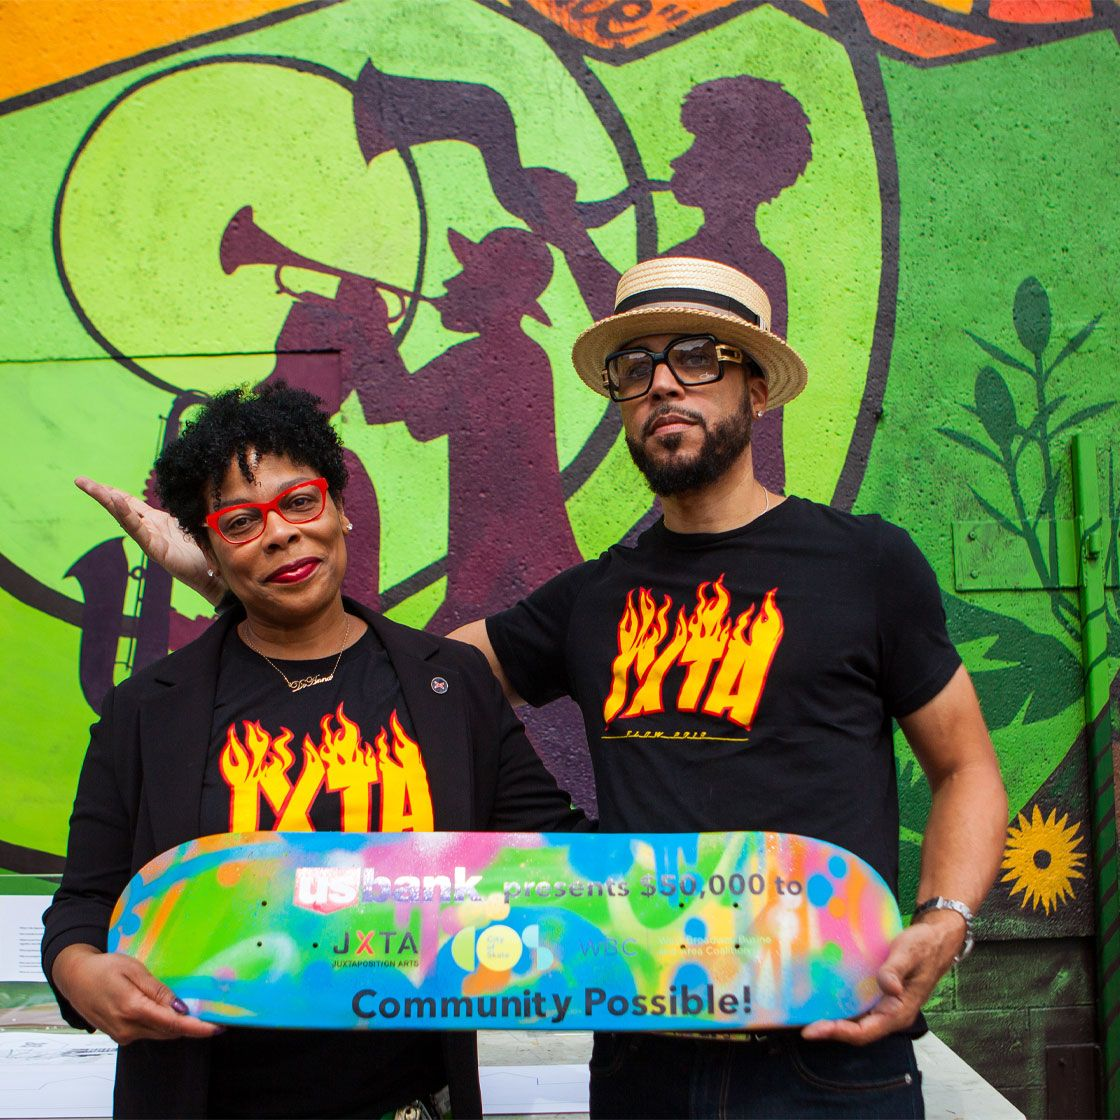 Two people holding a skate deck